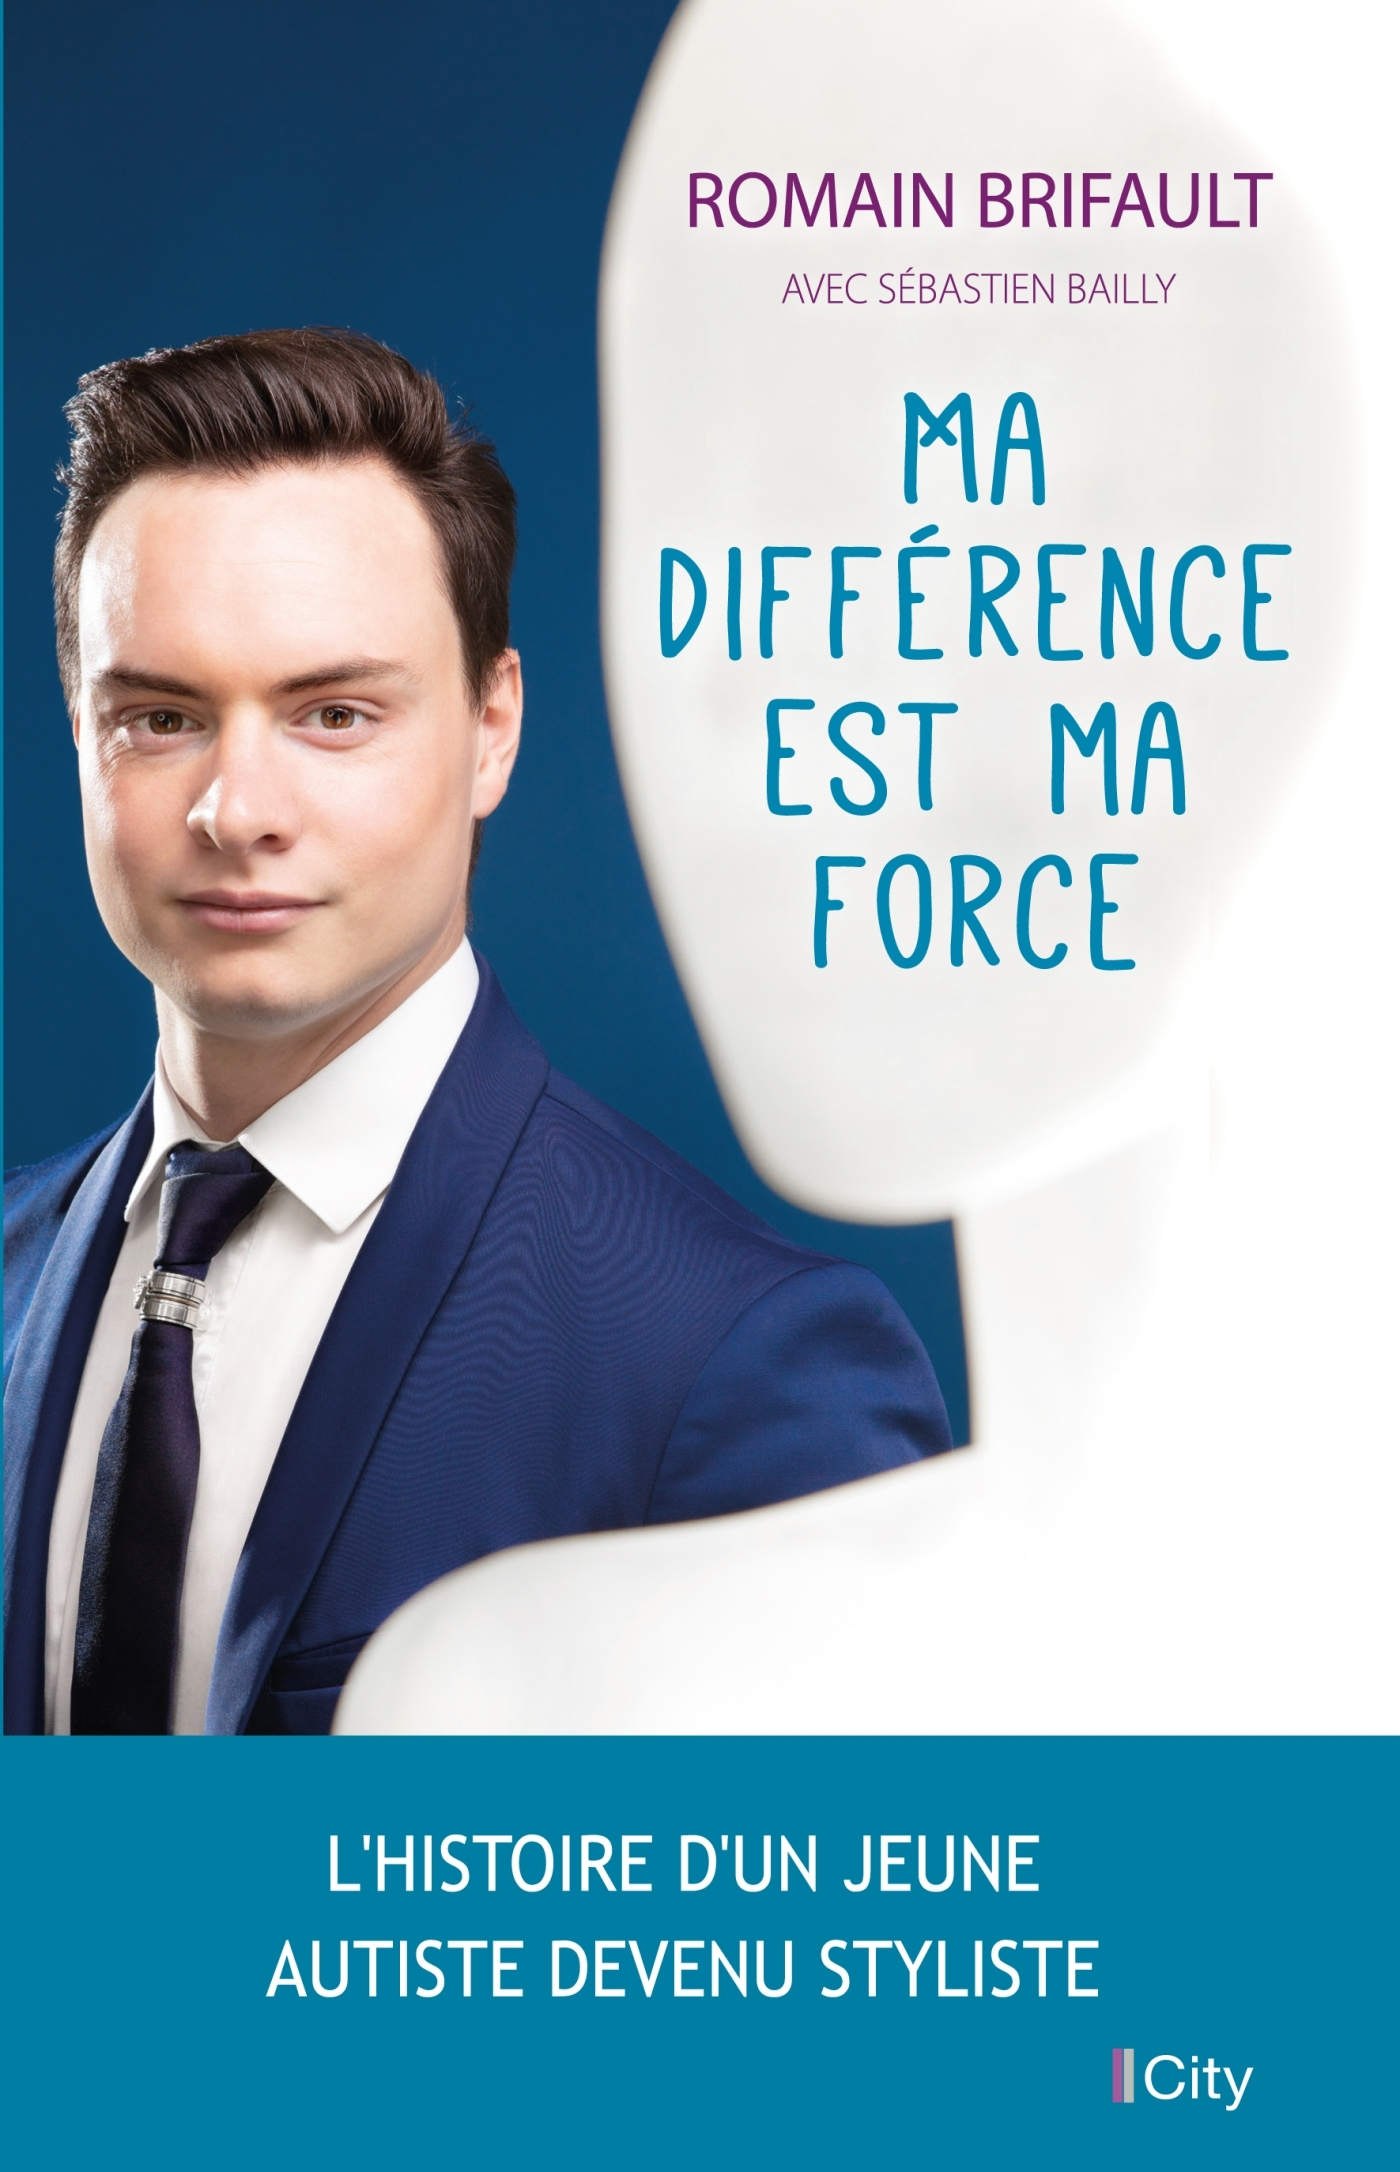 MA DIFFERENCE EST MA FORCE